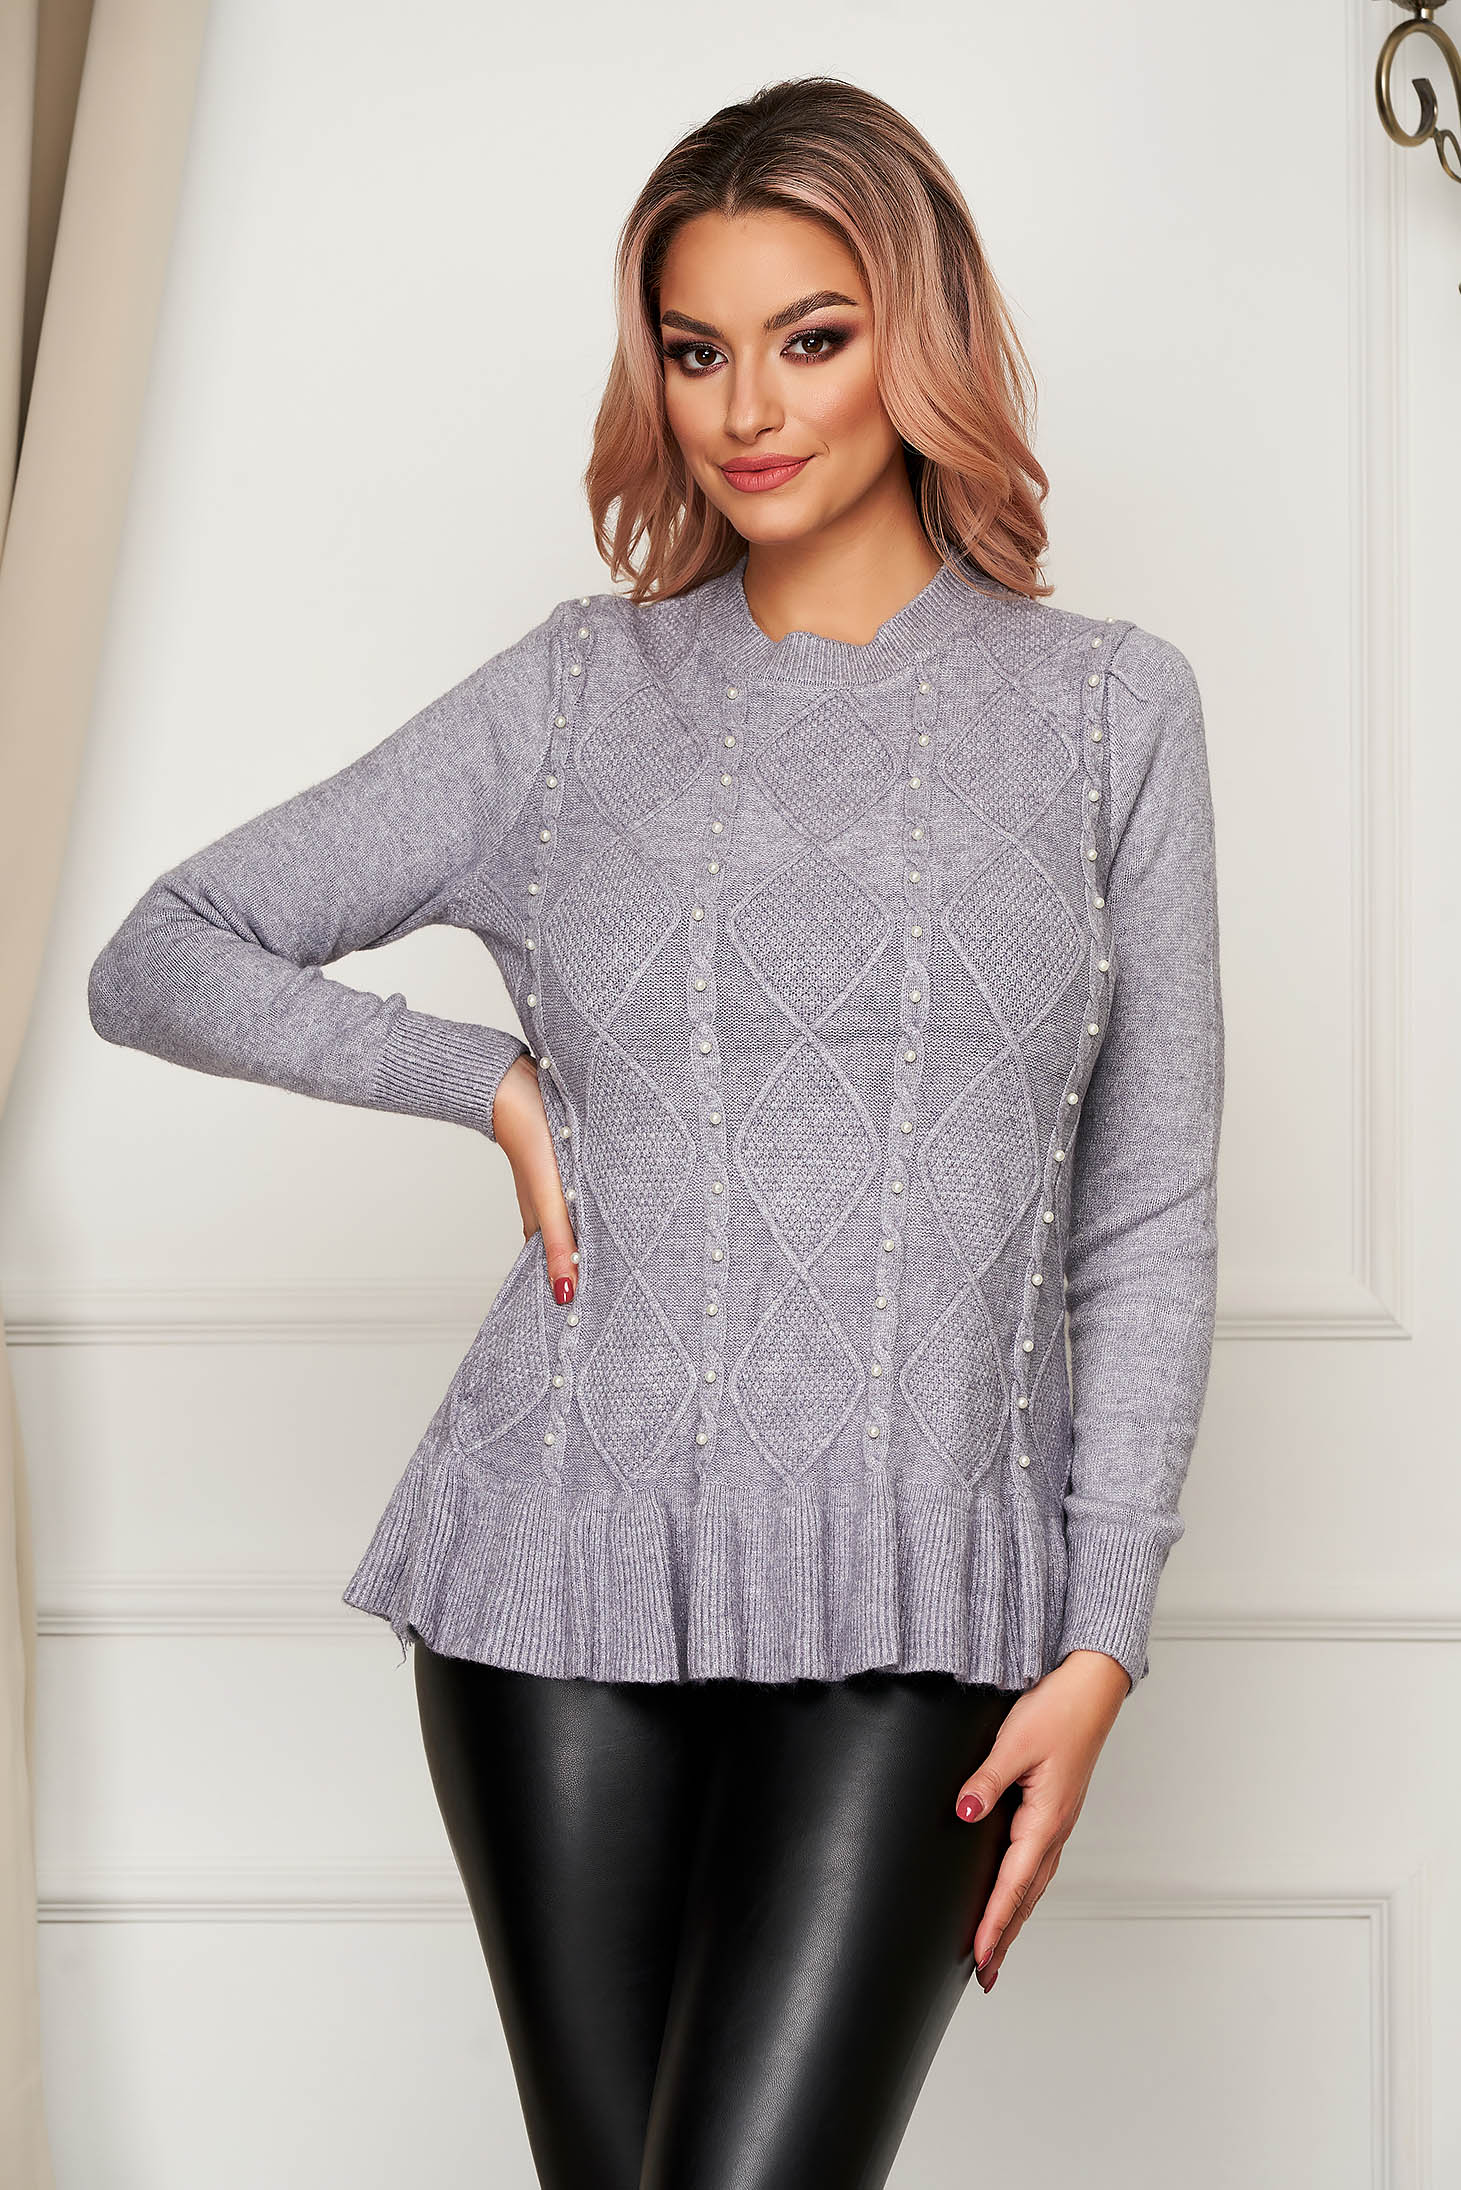 Grey sweater casual flared knitted with pearls with ruffle details